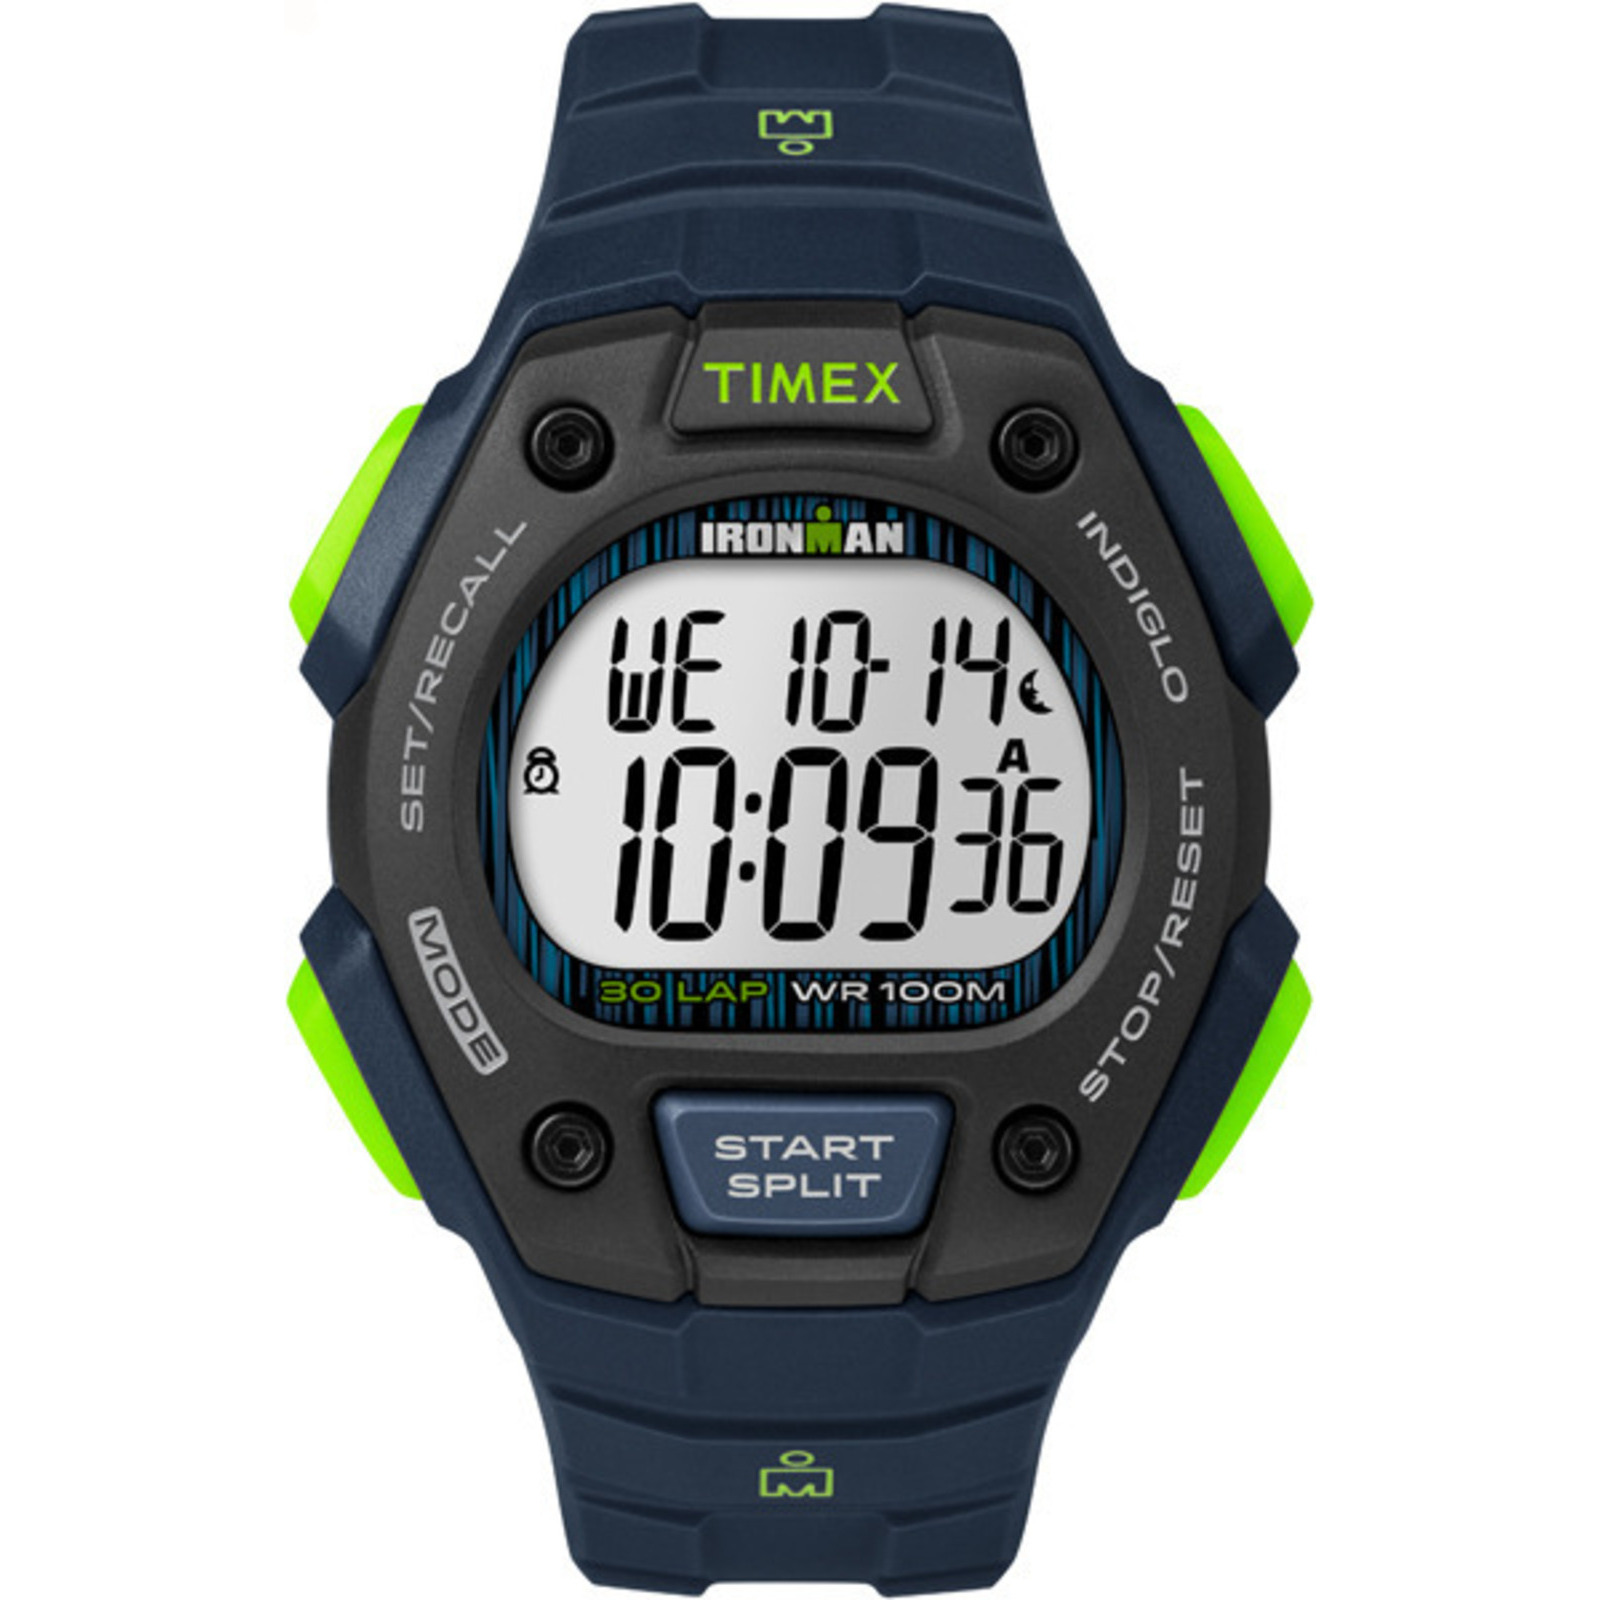 Timex Men's IRONMAN Classic 30 Full-Size Resin |Blue| Sport Watch TW5M11600